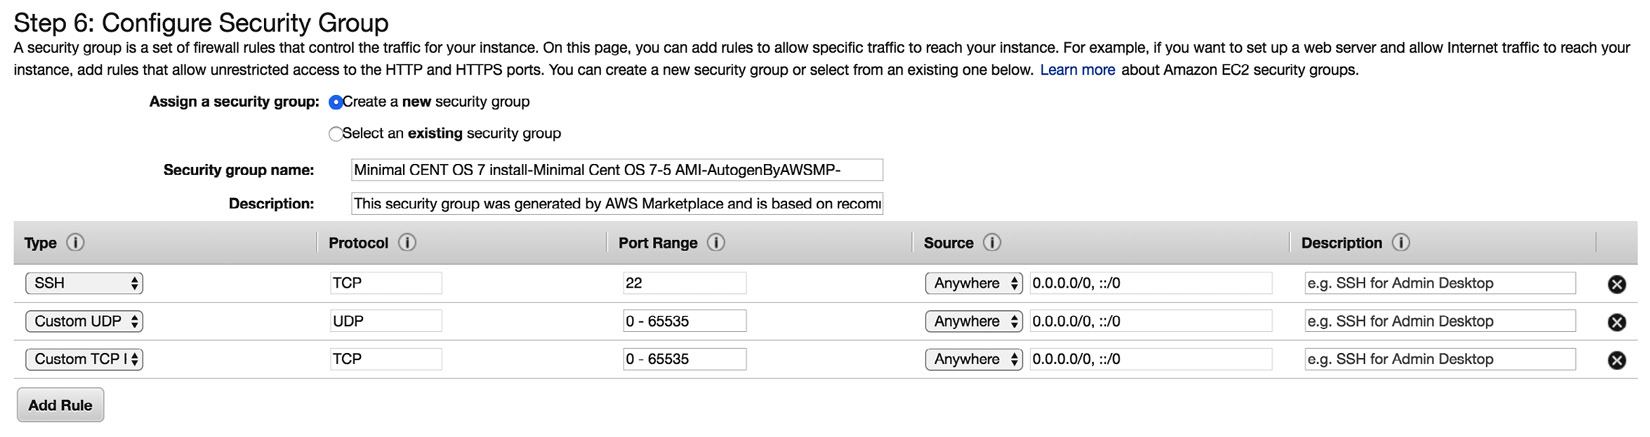 Figure 1.10 – Creating a security group